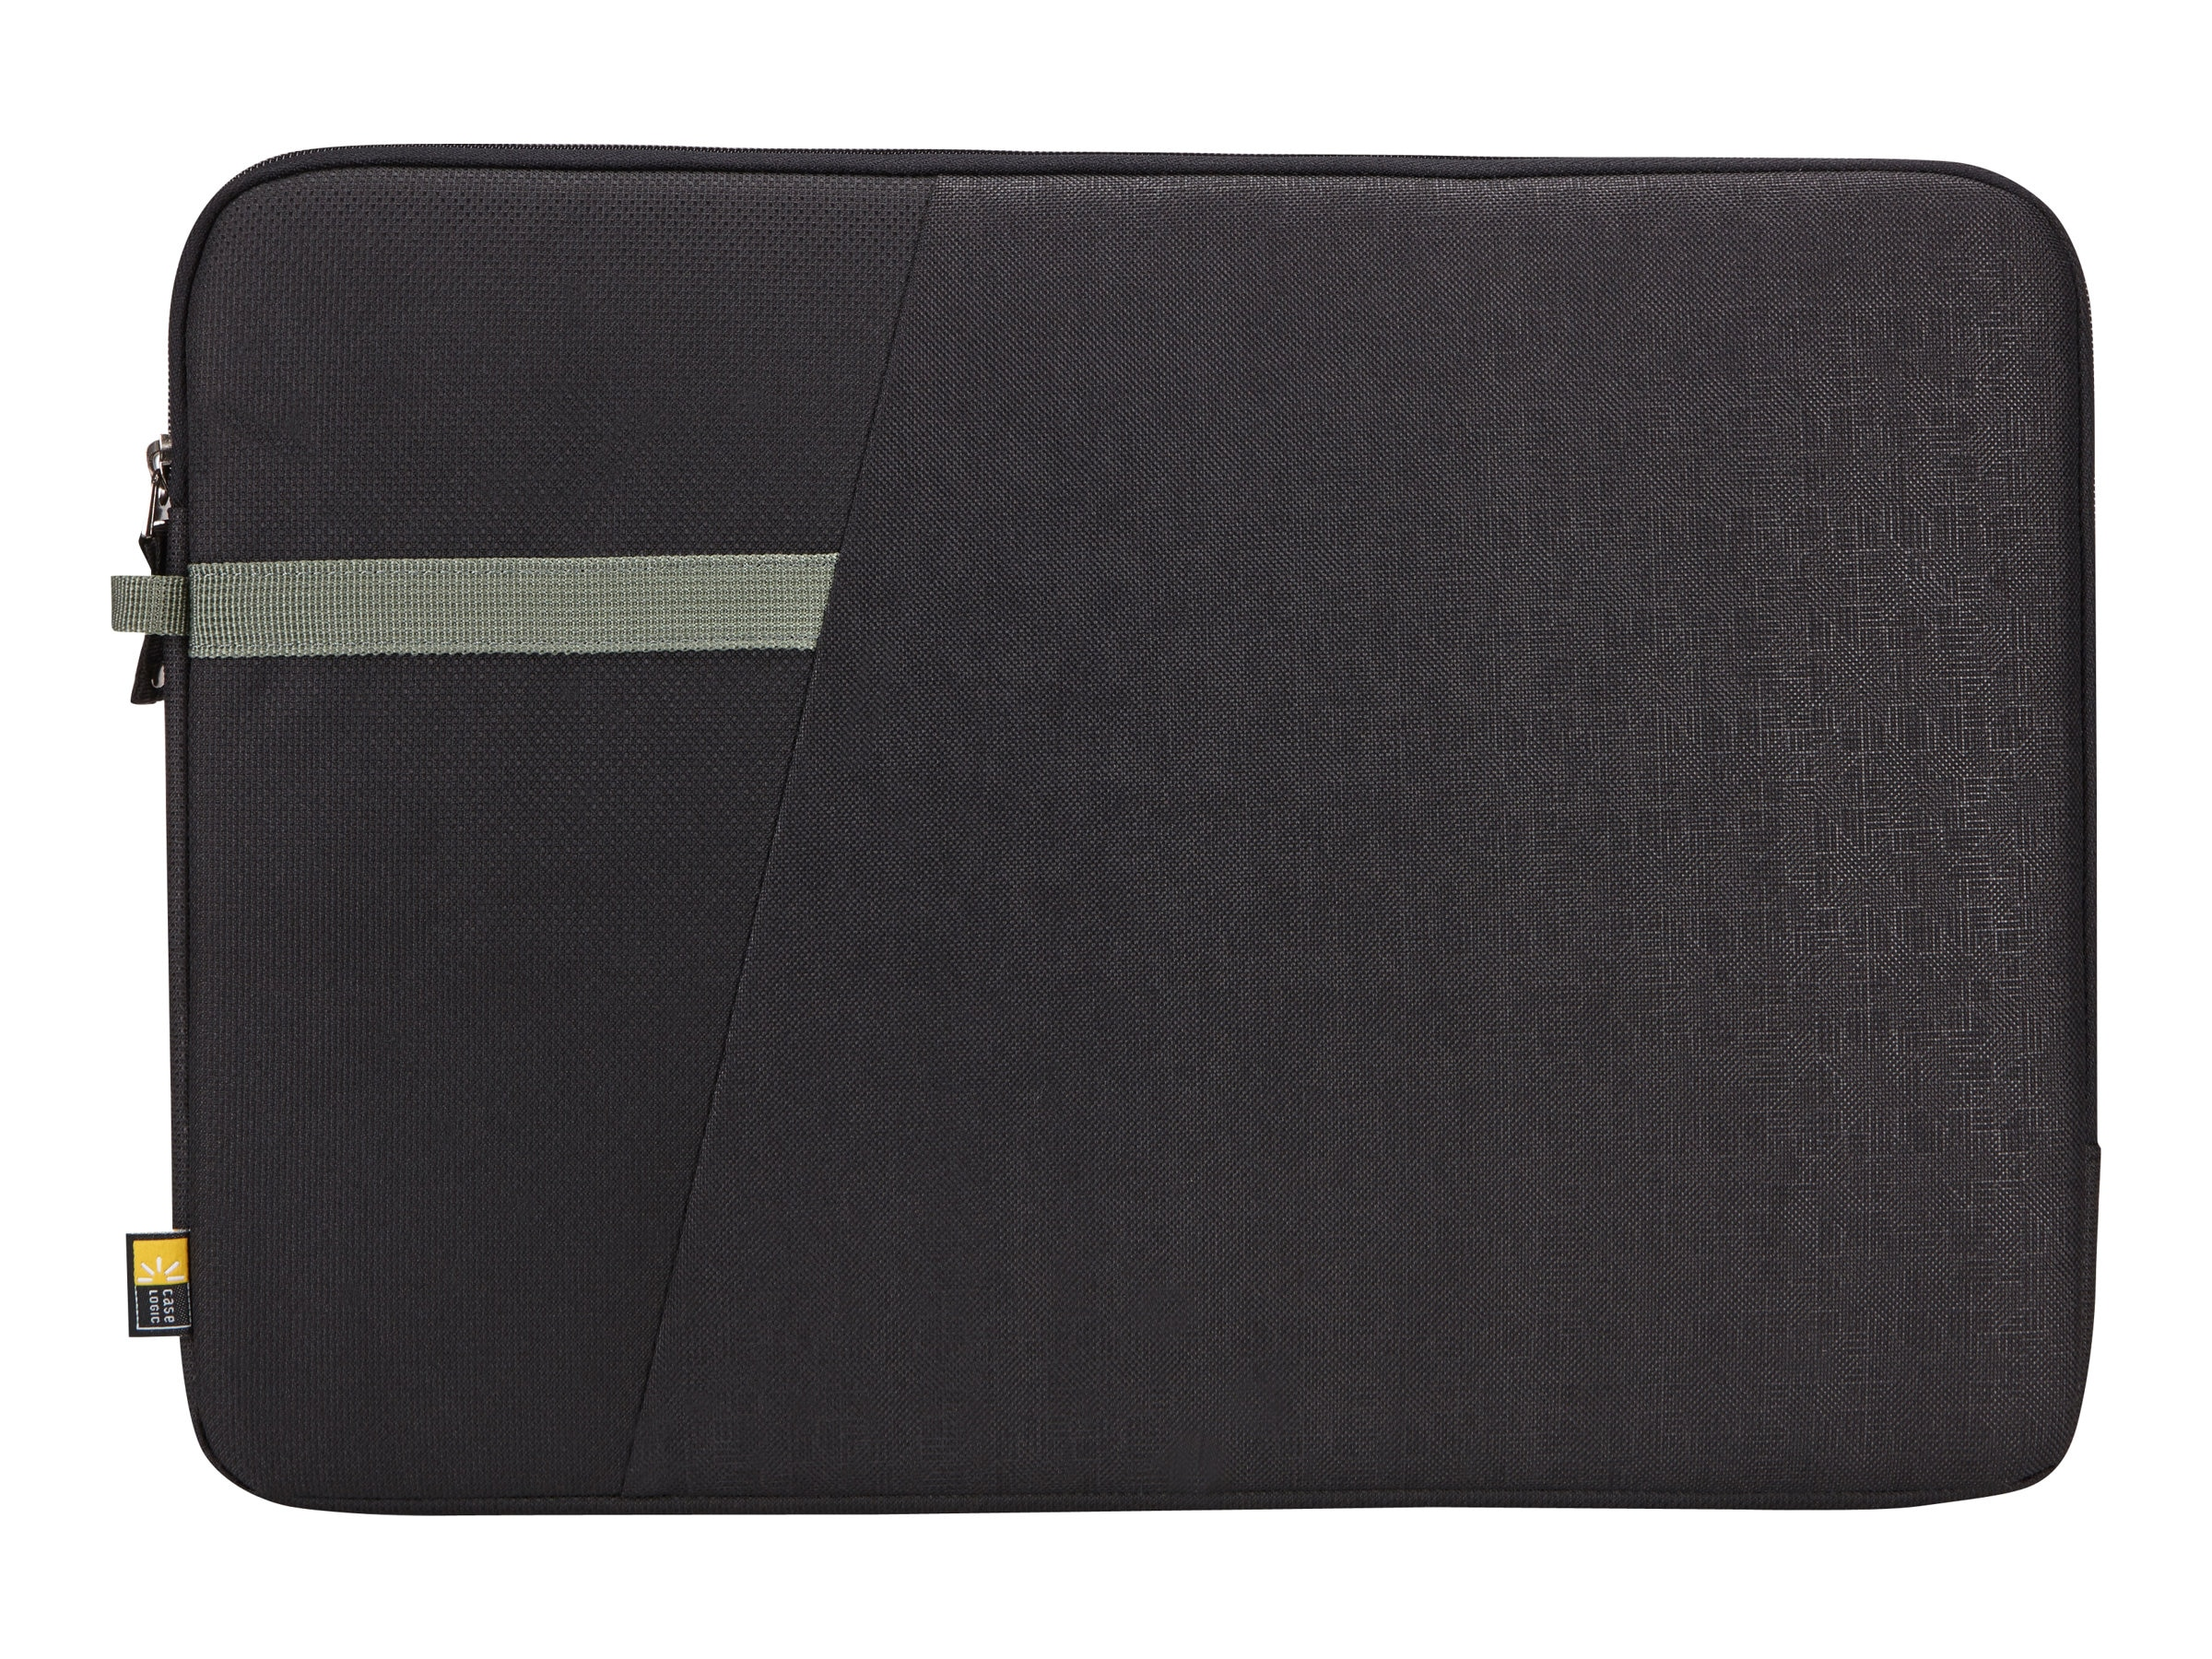 Case Logic Ibira 15.6 Laptop Sleeve, Black